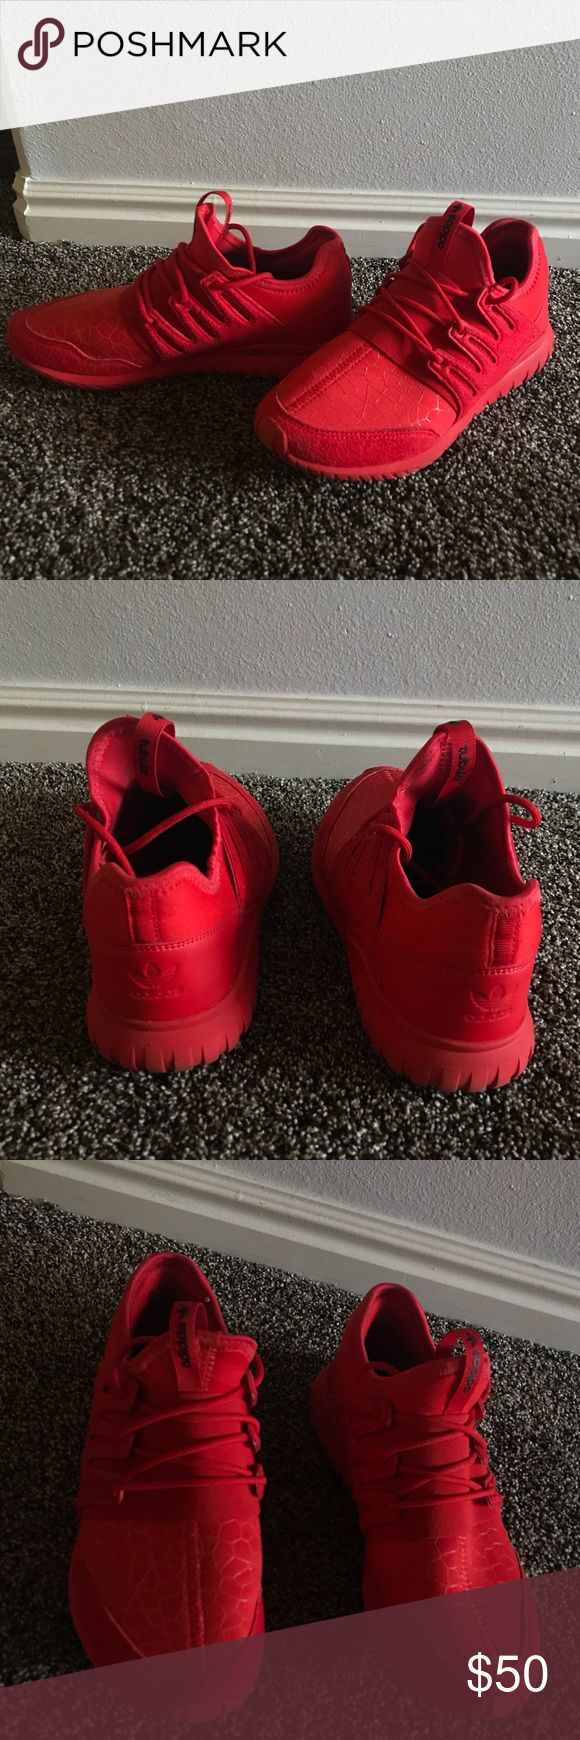 Adidas tubular red These shoes have literally been worn once and they look brand new adidas Shoes Sneakers